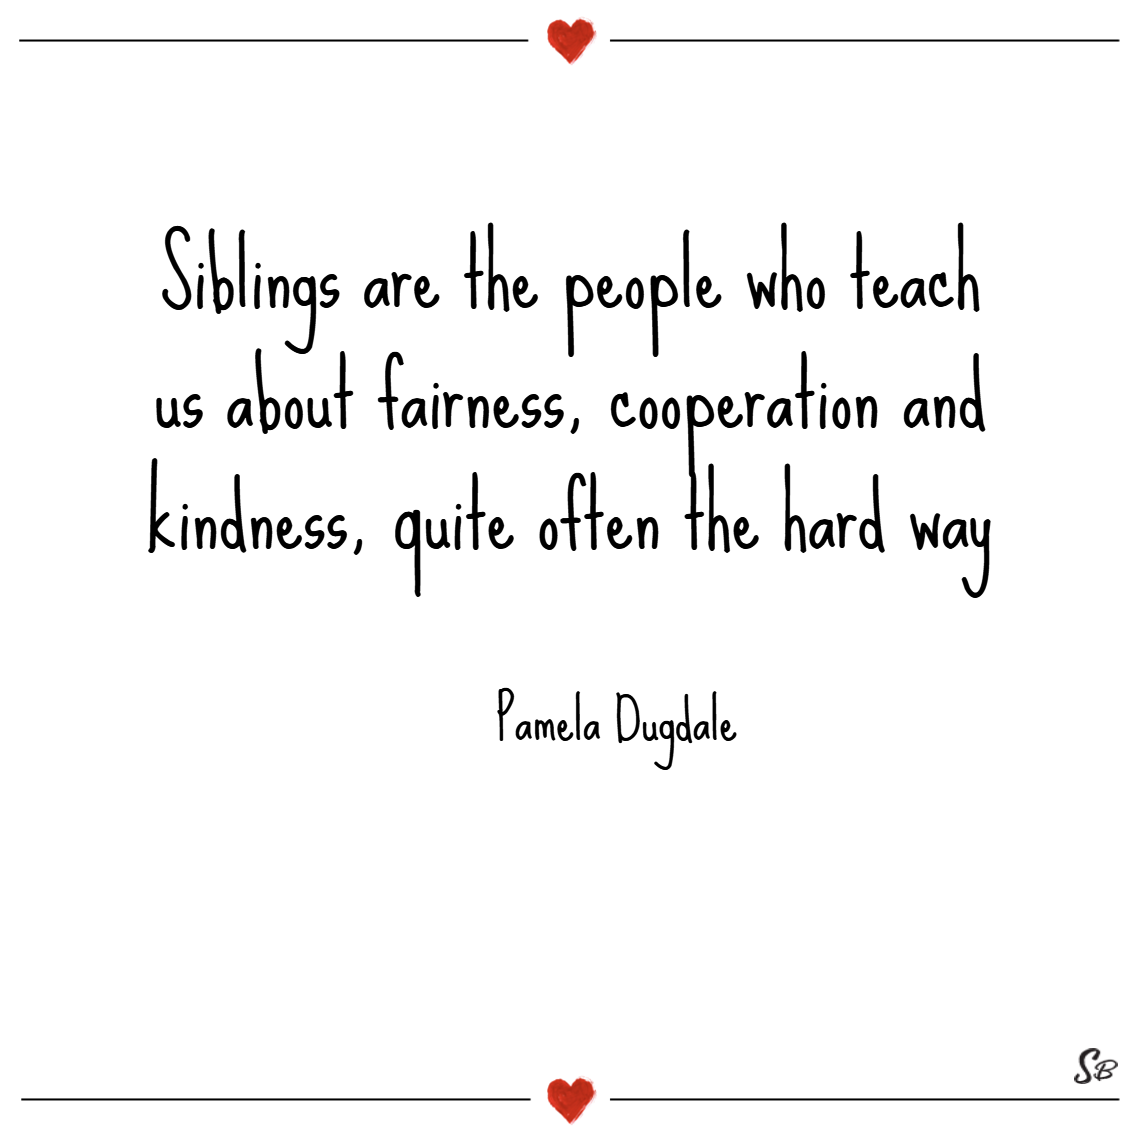 Siblings-are-the-people-who-teach-us-about-fairness-cooperation-and-kindness-quite-often-the-hard-way.-–-Pamela-Dugdale-1.png